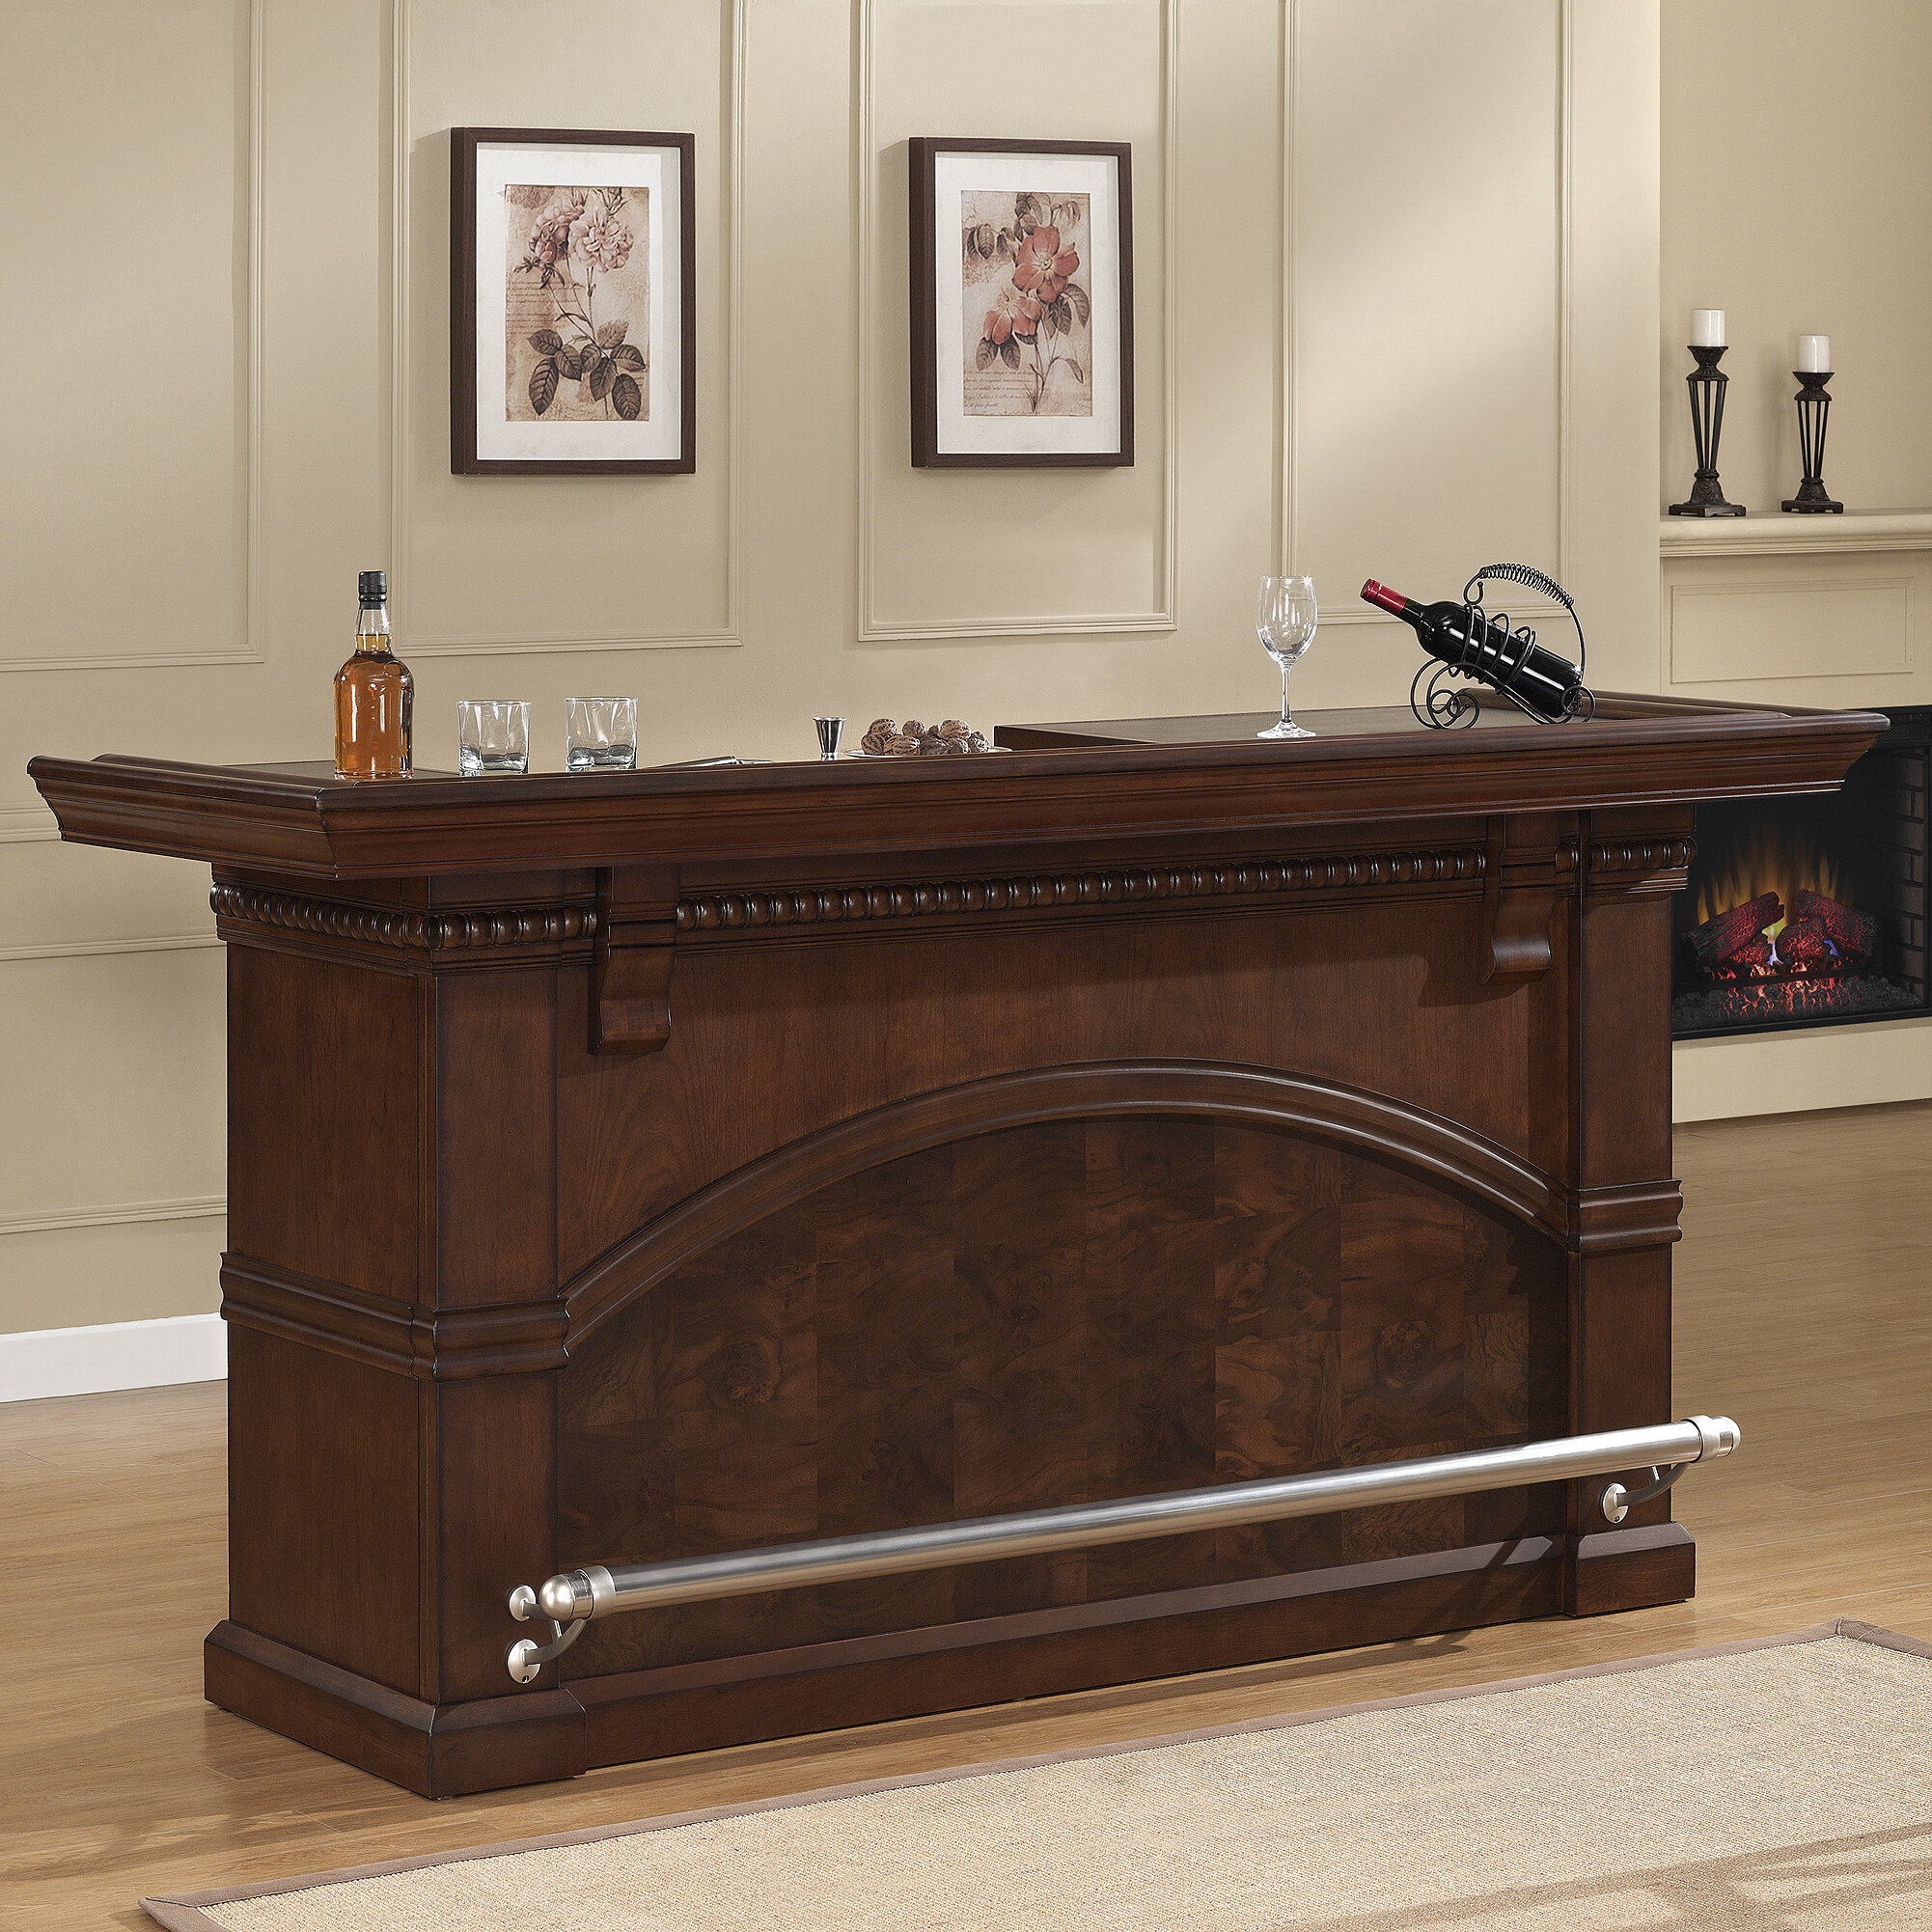 American Heritage Carmella Bar With Wine Storage | Wayfair